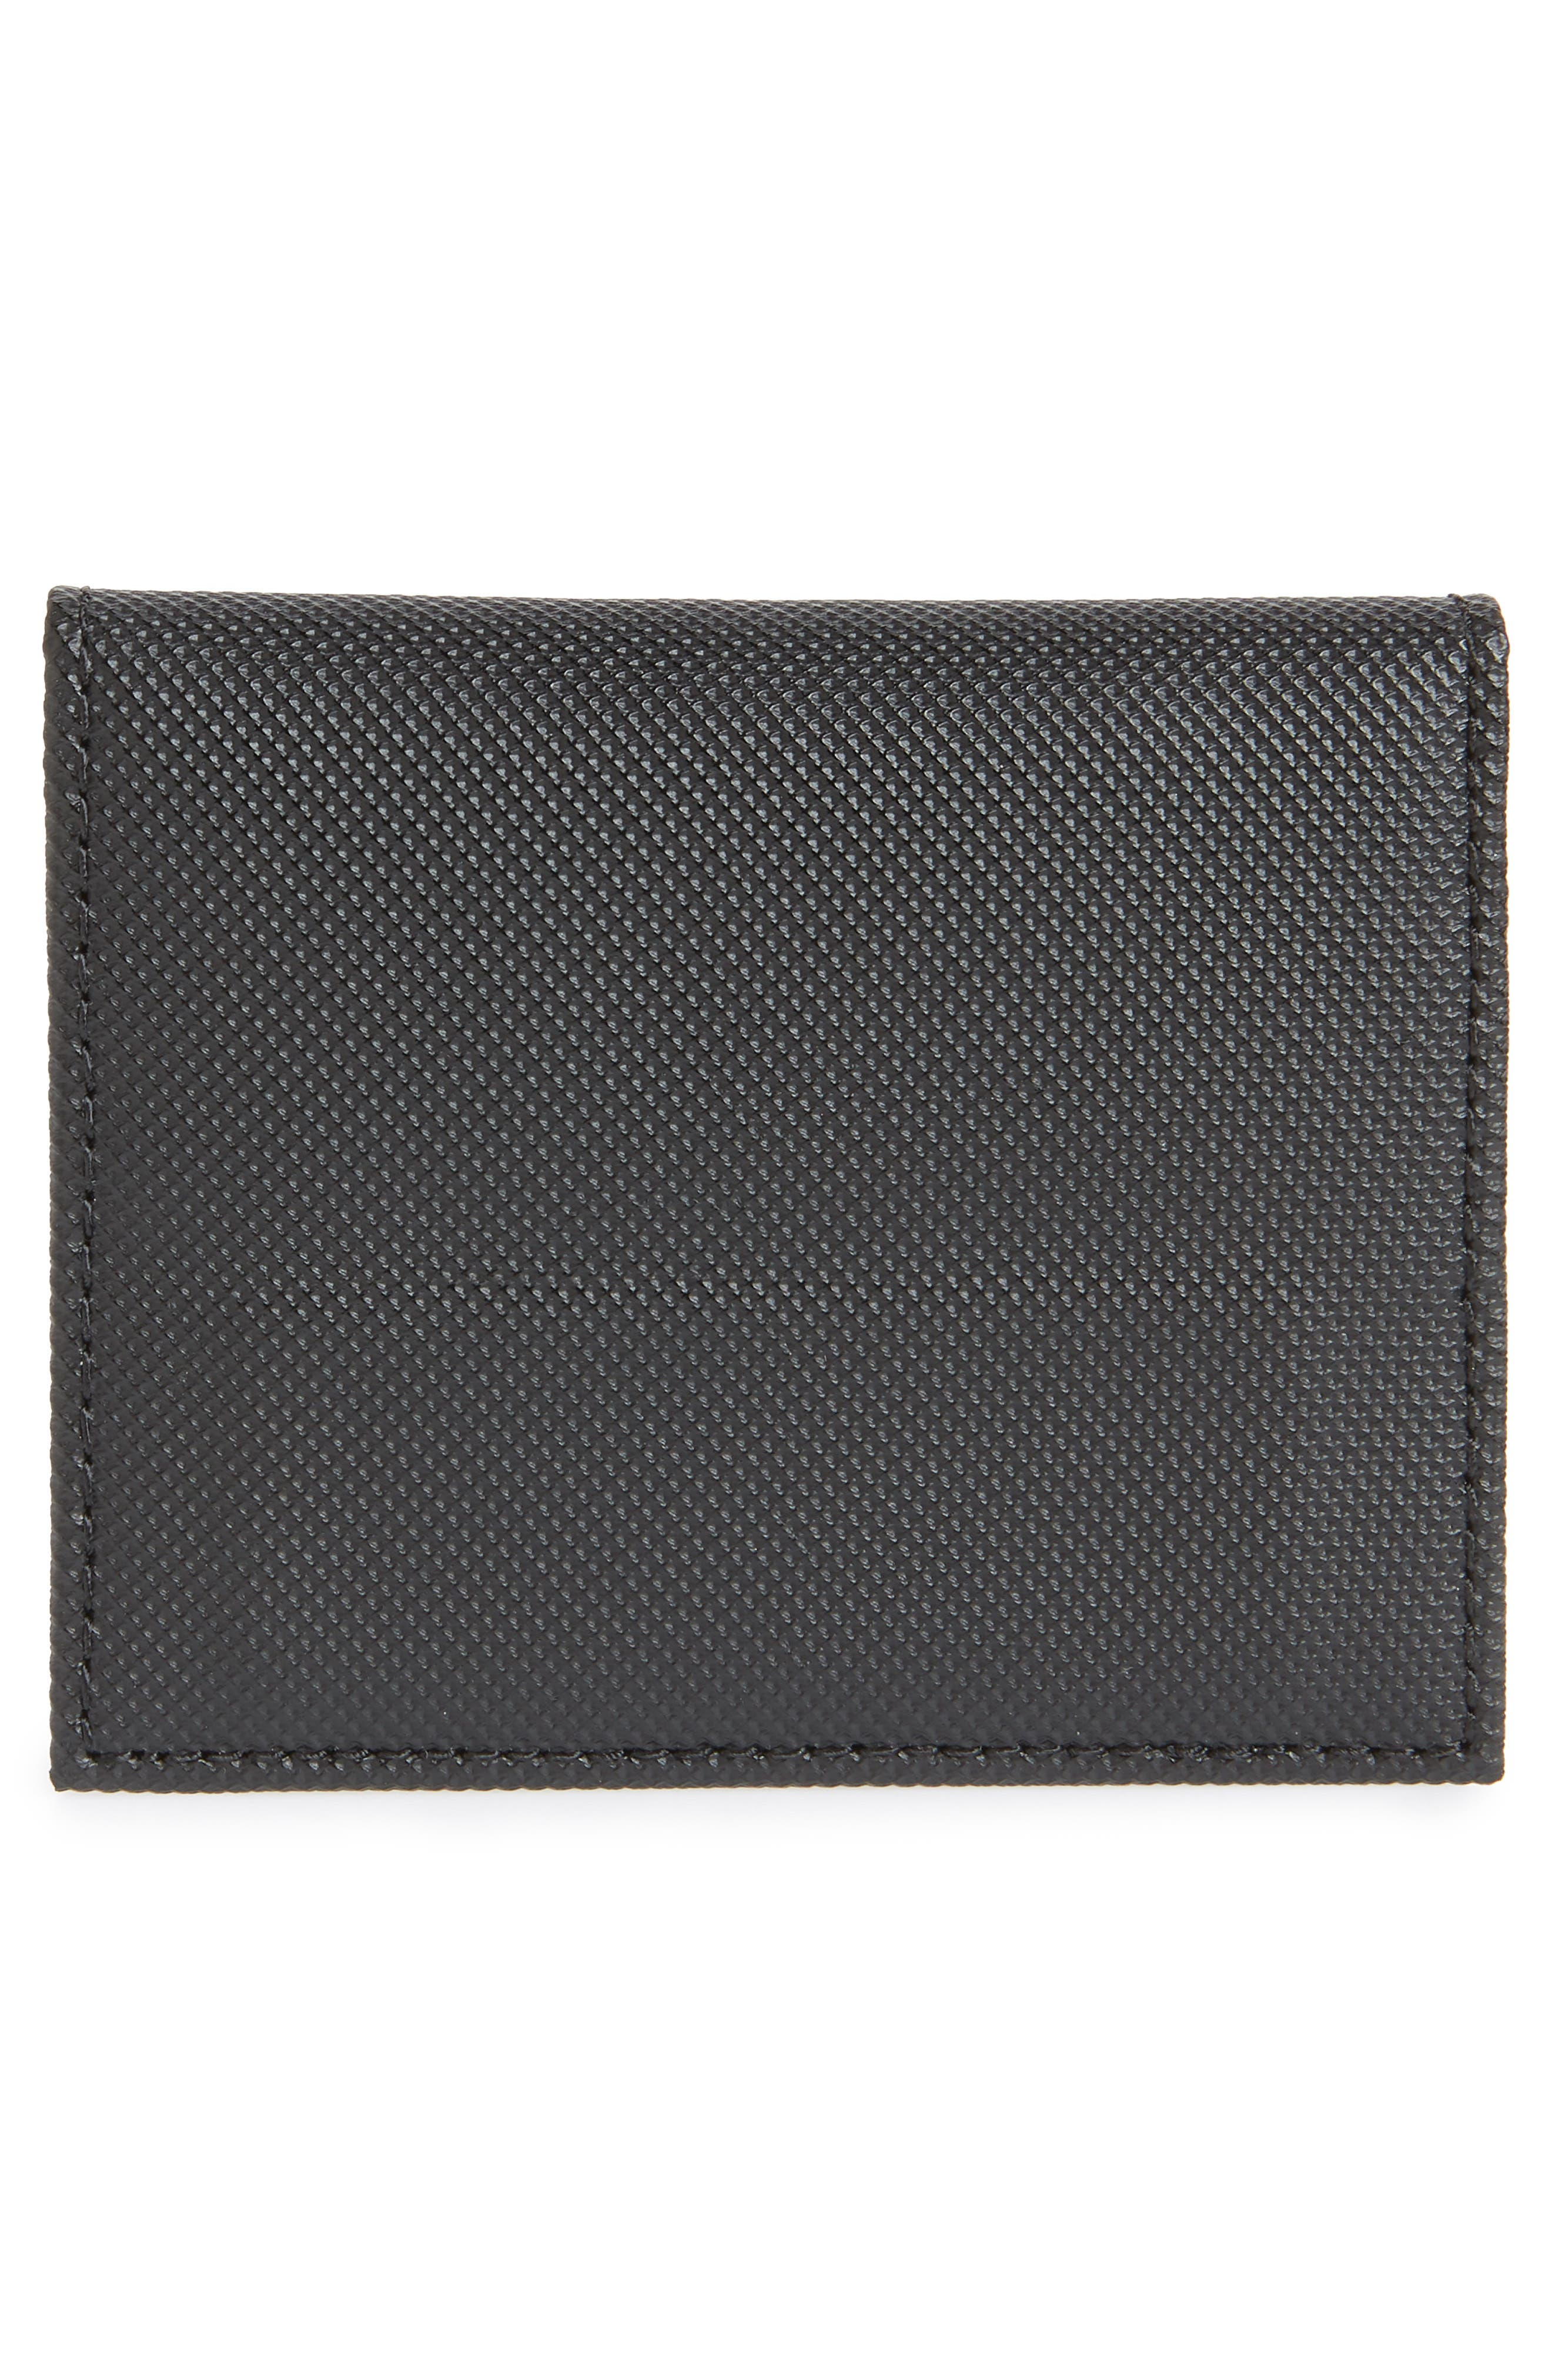 Micro Perforated Leather Bifold Card Holder,                             Alternate thumbnail 3, color,                             BLACK